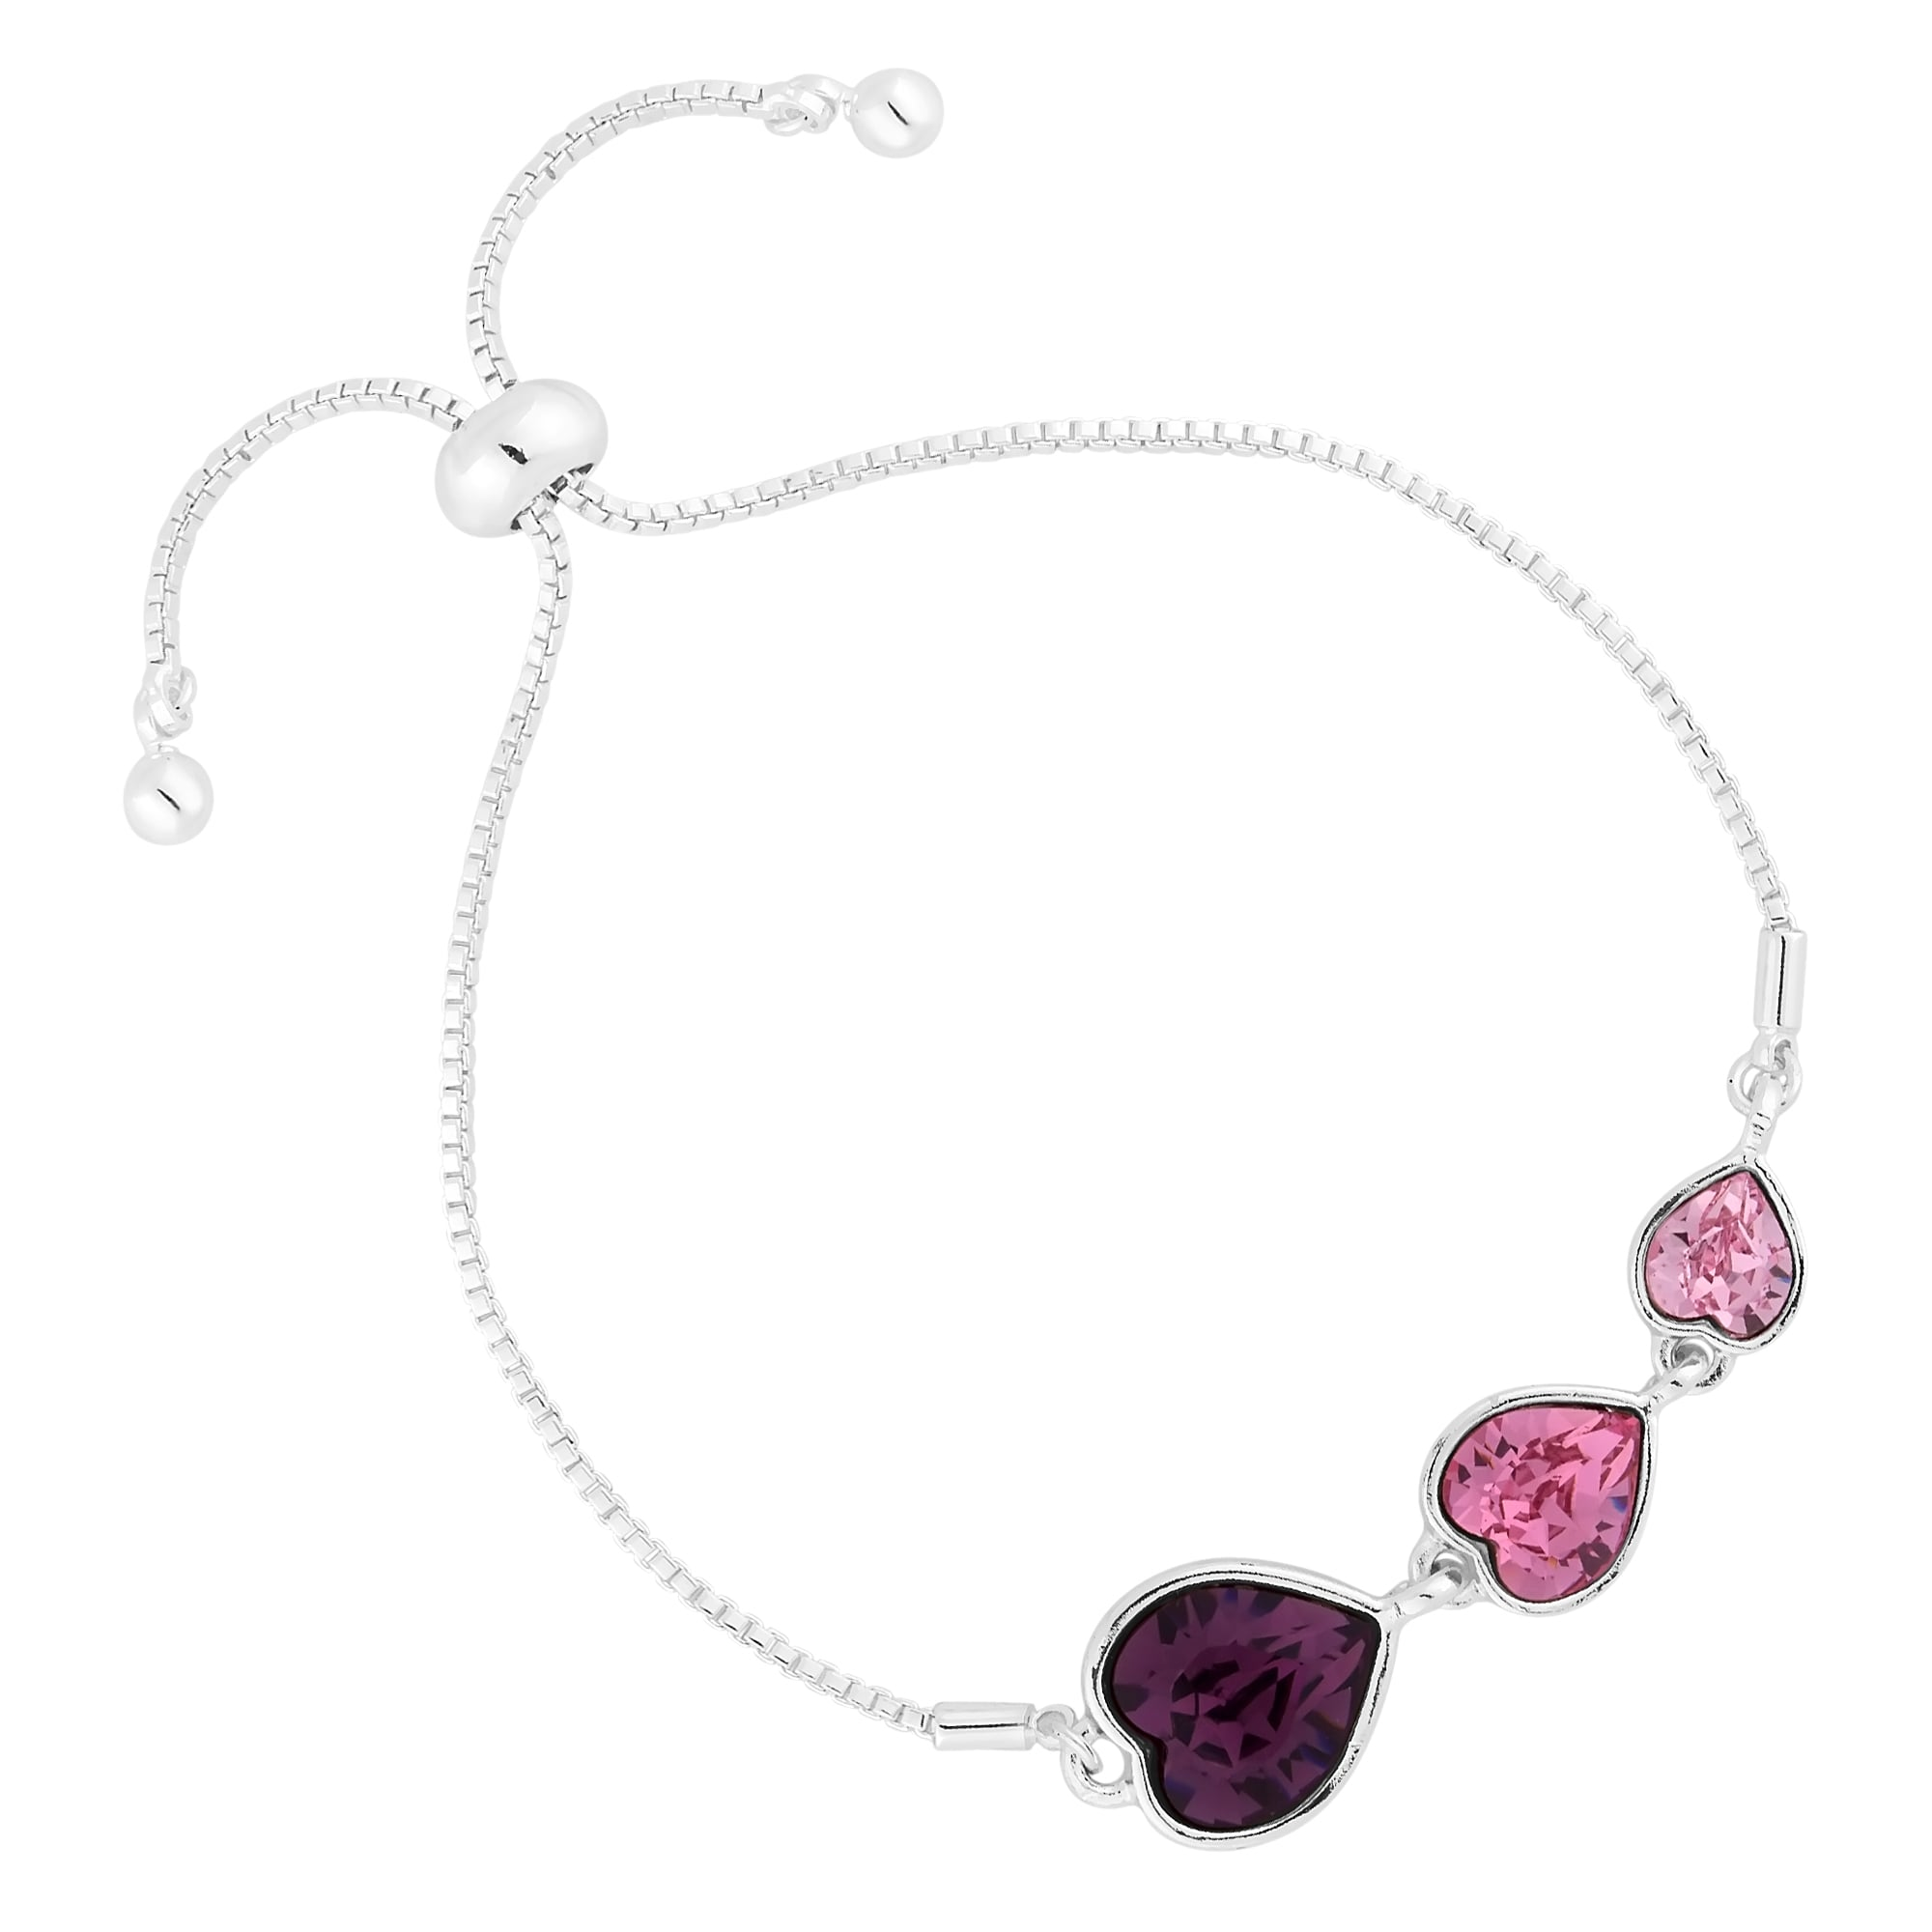 roodle noodle silver heart sterling rice bead pink enamel charm with ball bracelet